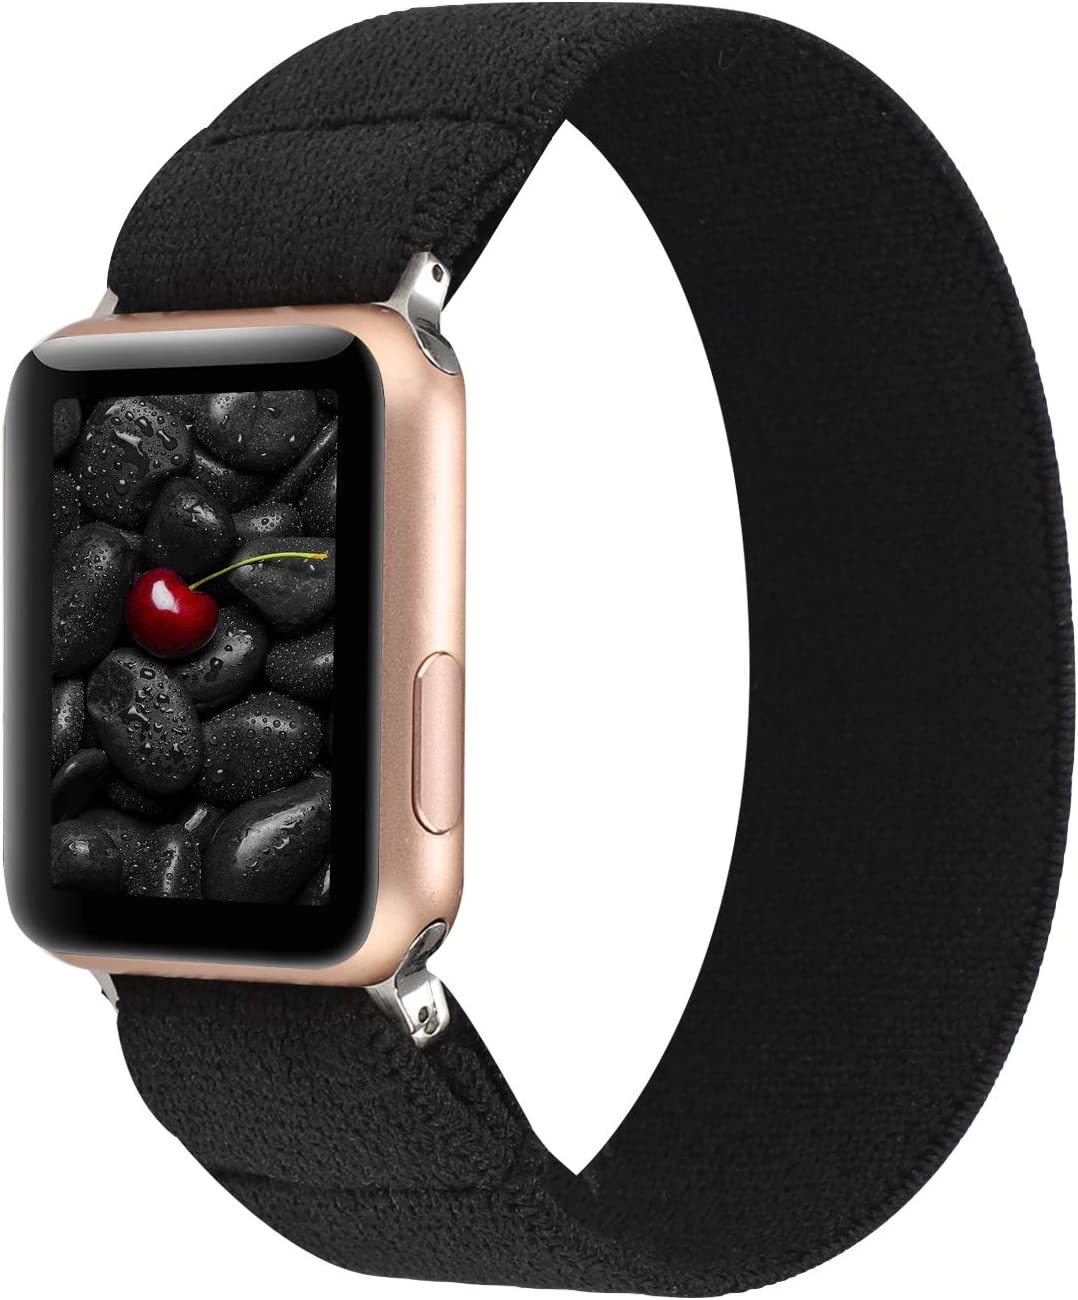 PENKEY Women Elastic Watch Band Compatible for Apple Watch 38mm 40mm 42mm 44mm,Stretchy Wristbands Replacement for IWatch Series 1 2 3 4 5 (Black, 38/40mm)